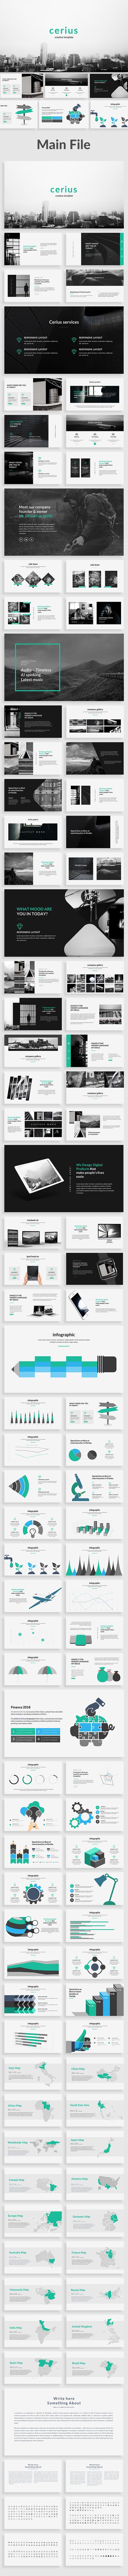 Cerius Creative Keynote Template - Creative Keynote Templates